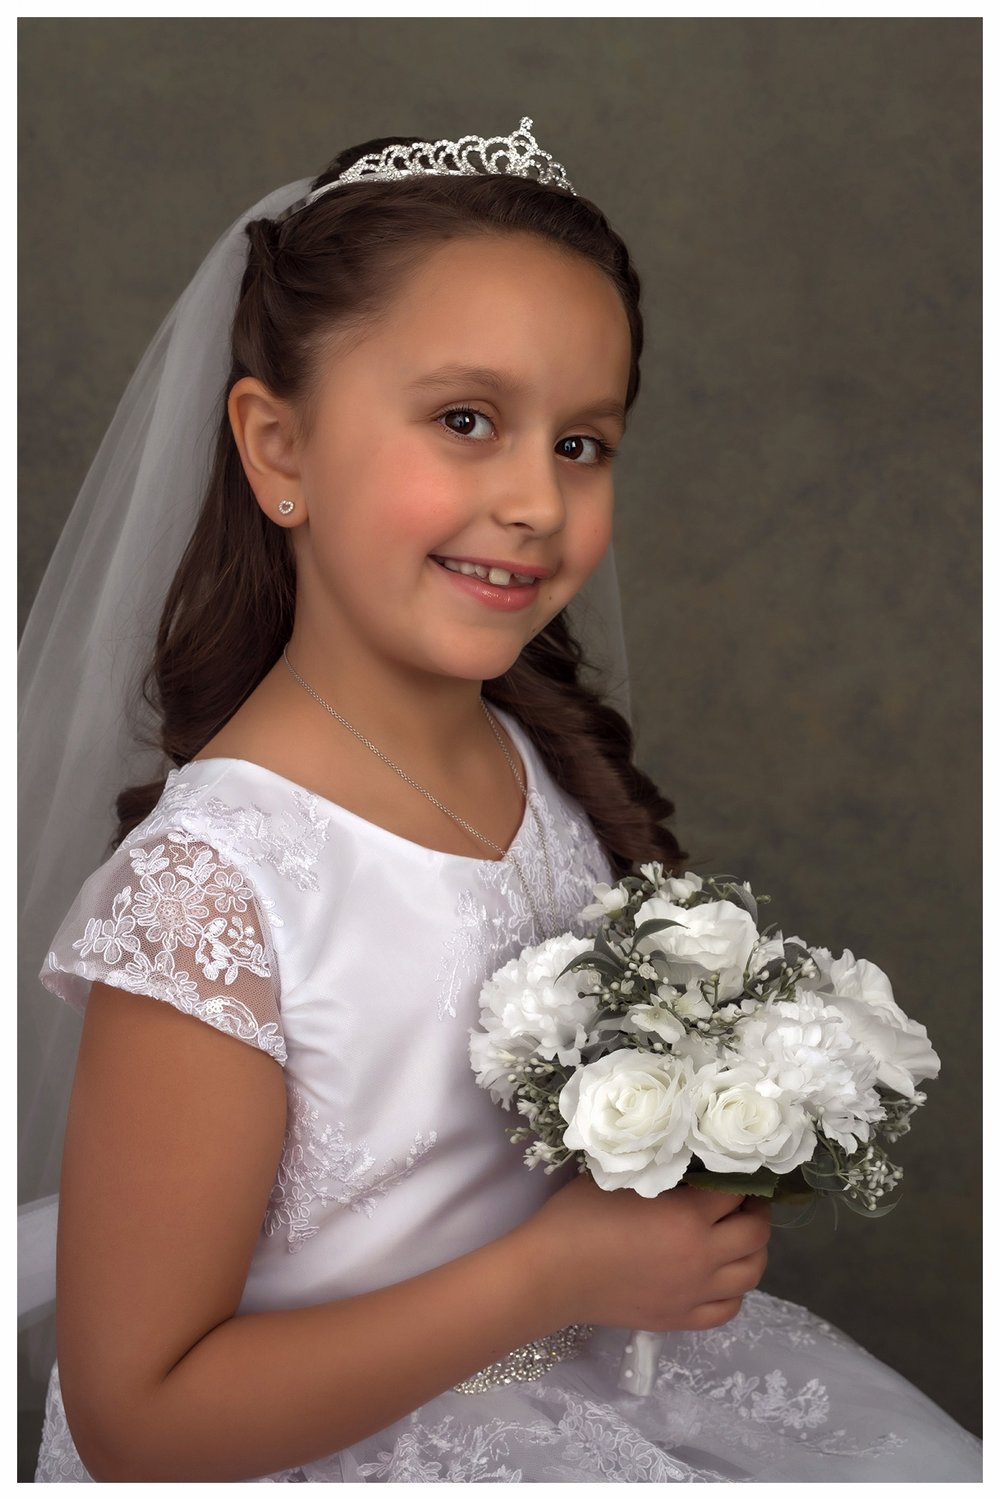 sofia communion-20 cropped for card RFP online.jpg